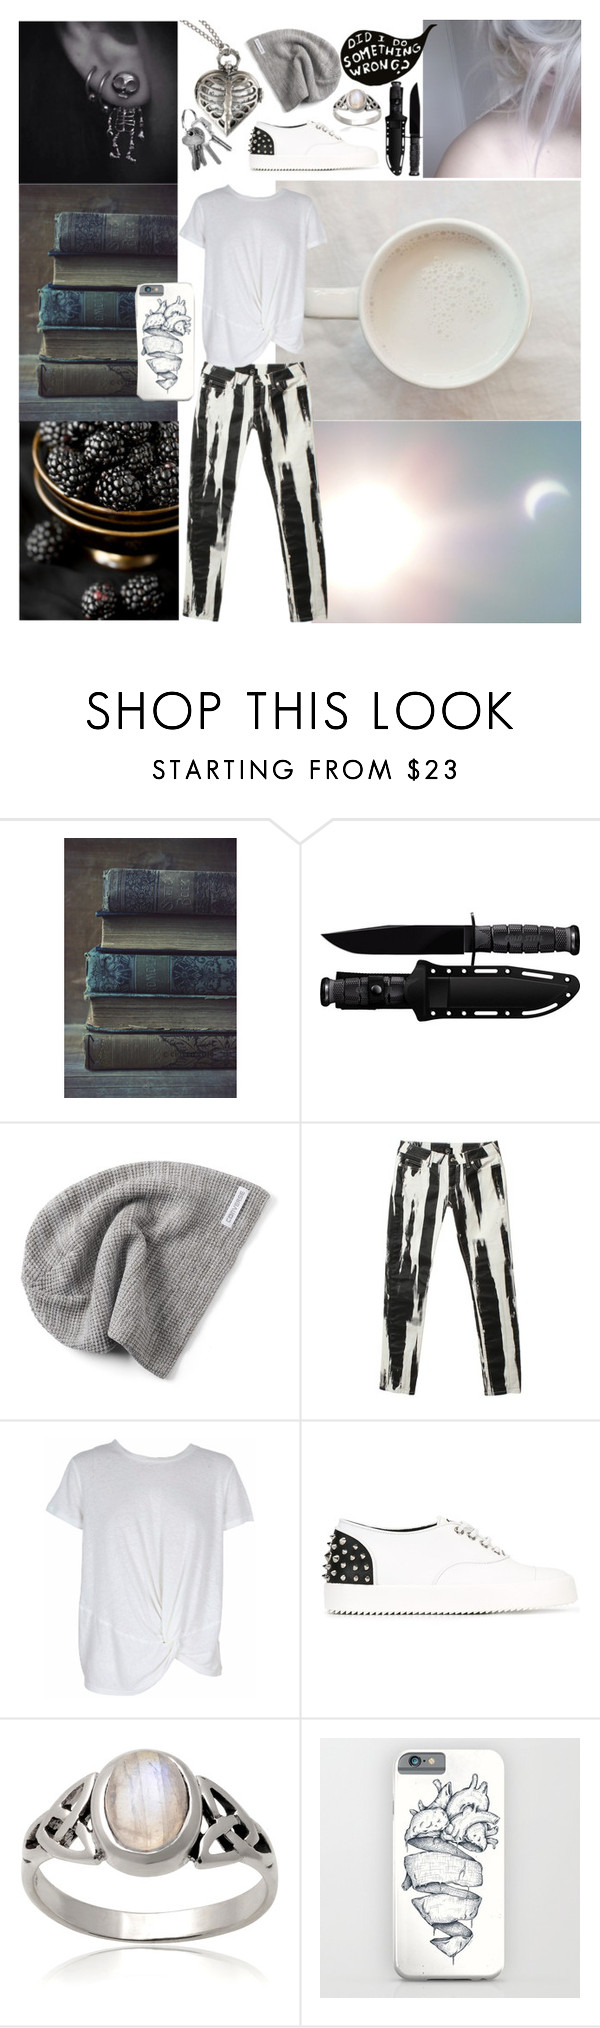 """Shock"" by sophia-pawz ❤ liked on Polyvore featuring Cold Steel, Converse, WALL, Alexander McQueen, MINKPINK, Giuseppe Zanotti, Journee Collection, white, black and blackandwhite"